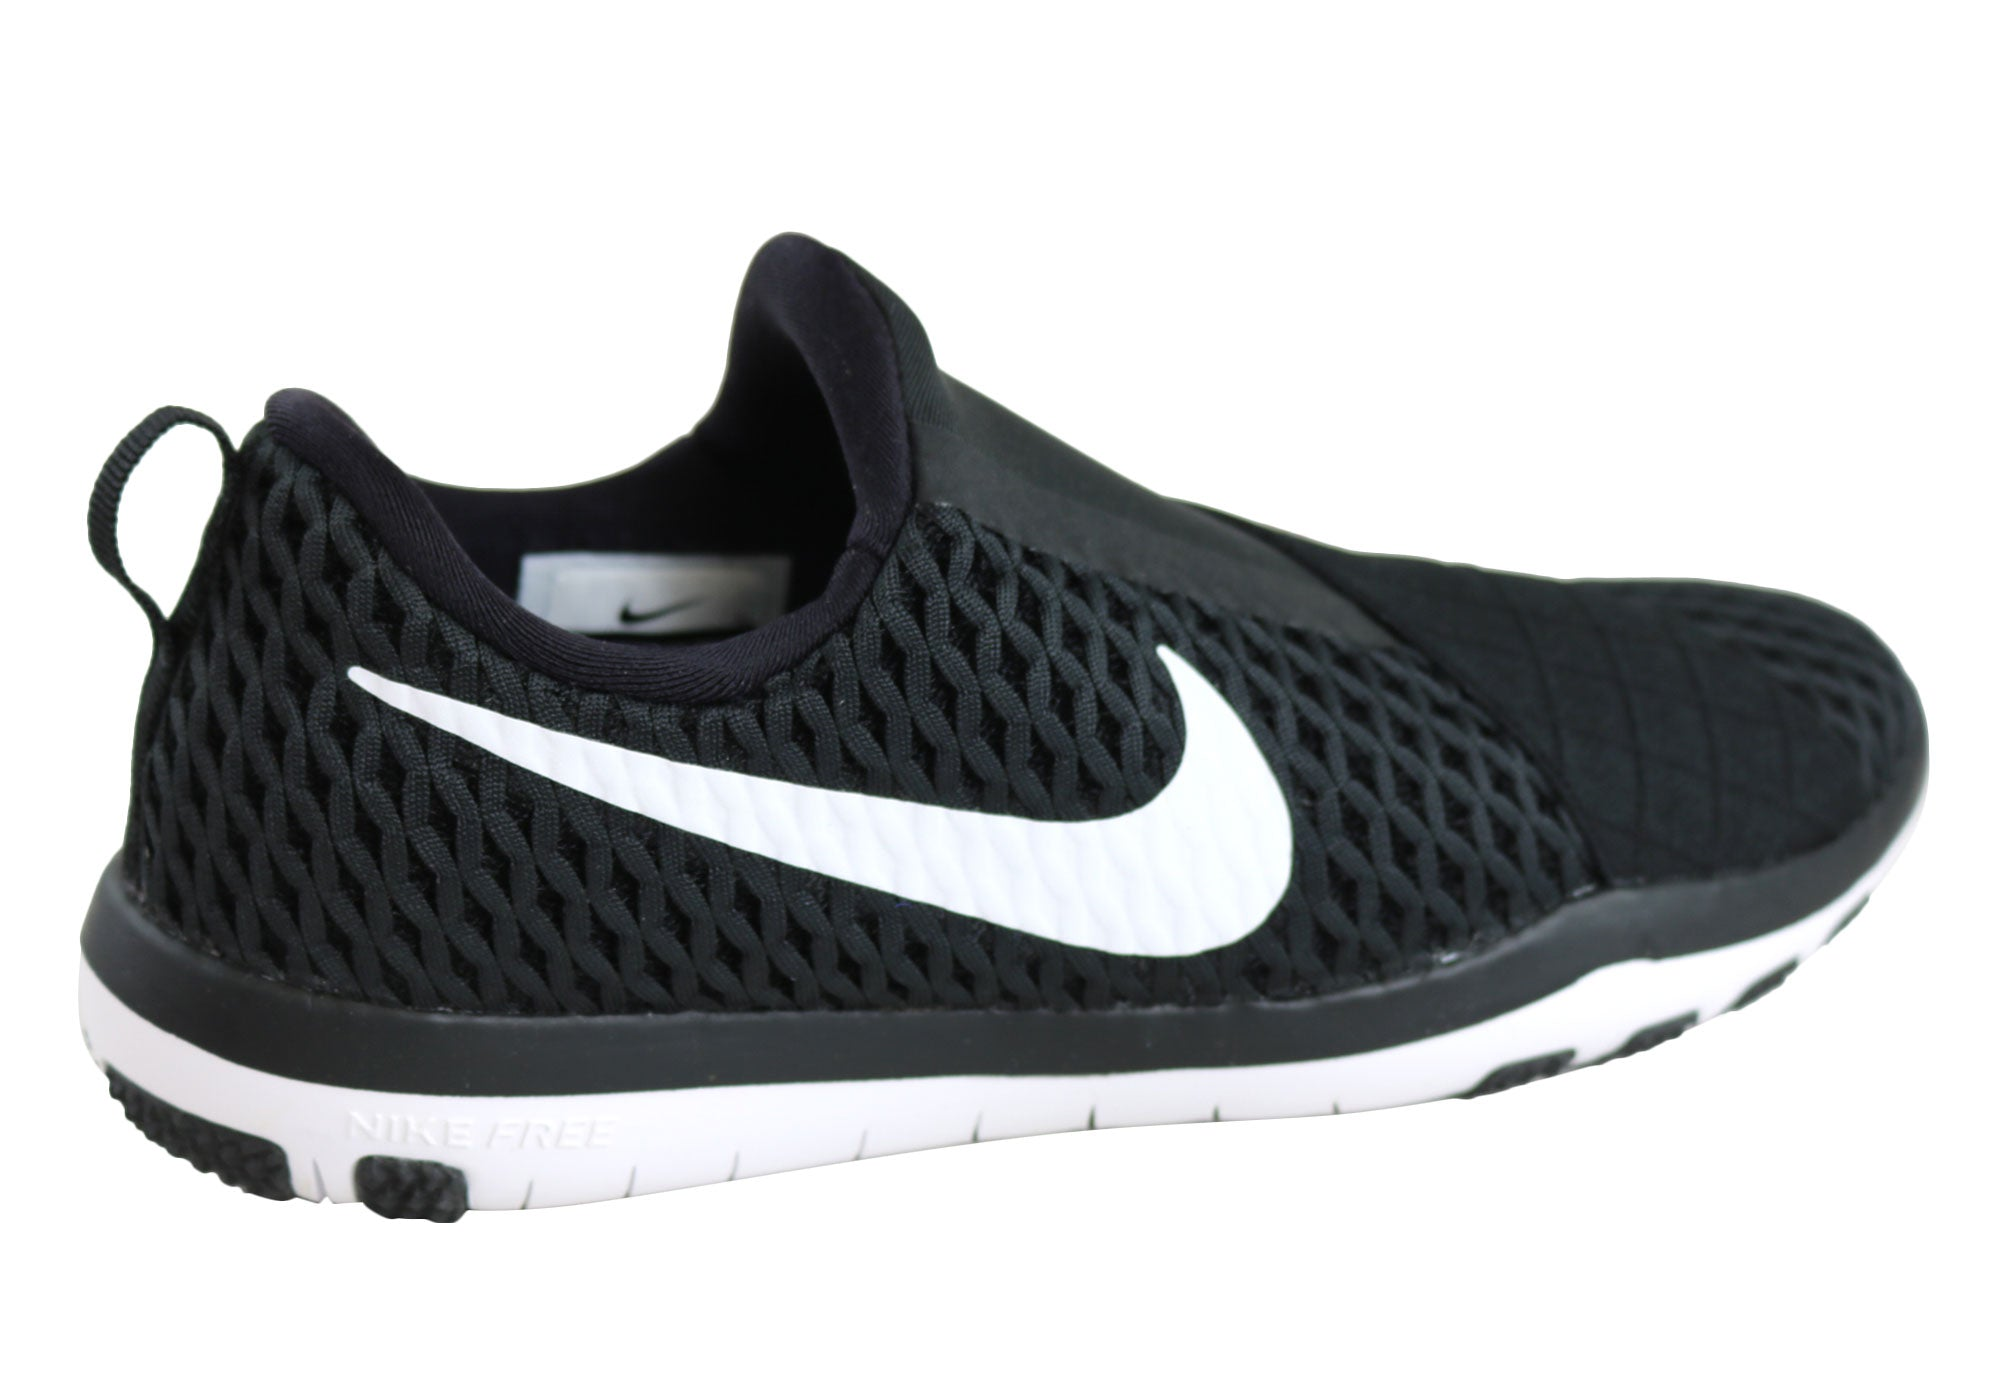 f4496b10ab92 Womens Nike Free Connect Comfortable Slip On Shoes